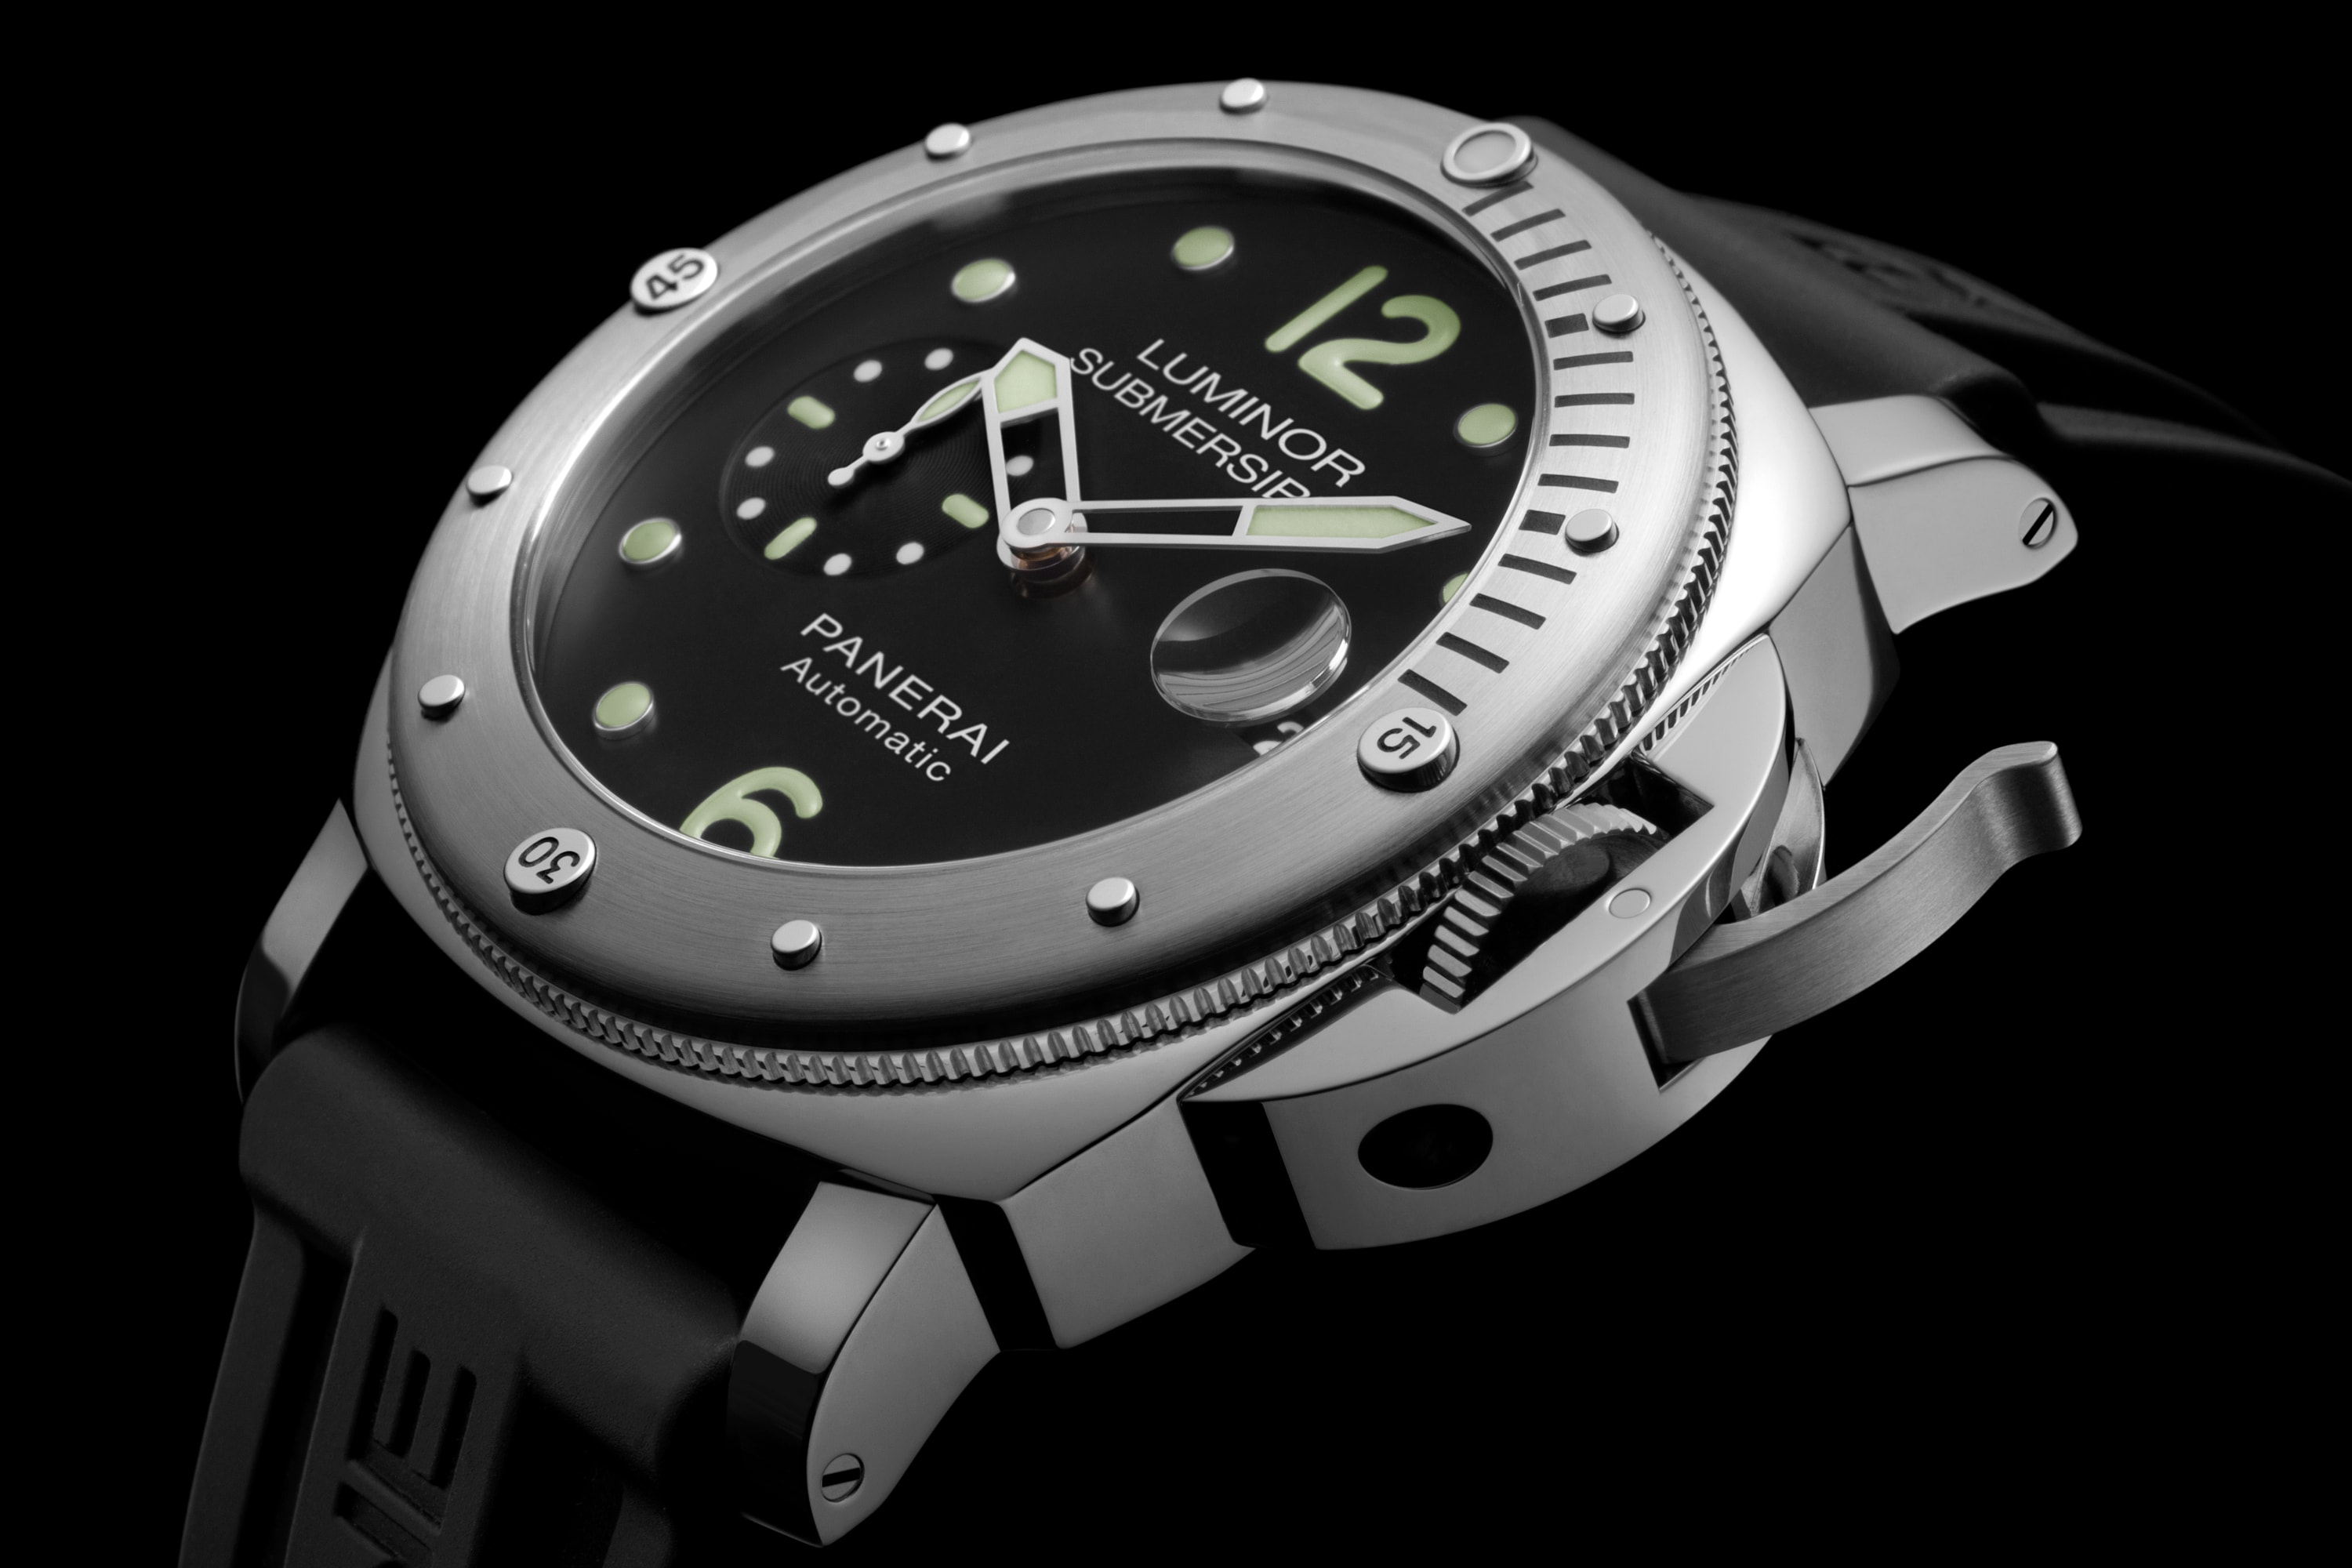 PNPAM01024 - Luminor Submersible Automatic Acciaio - 44mm